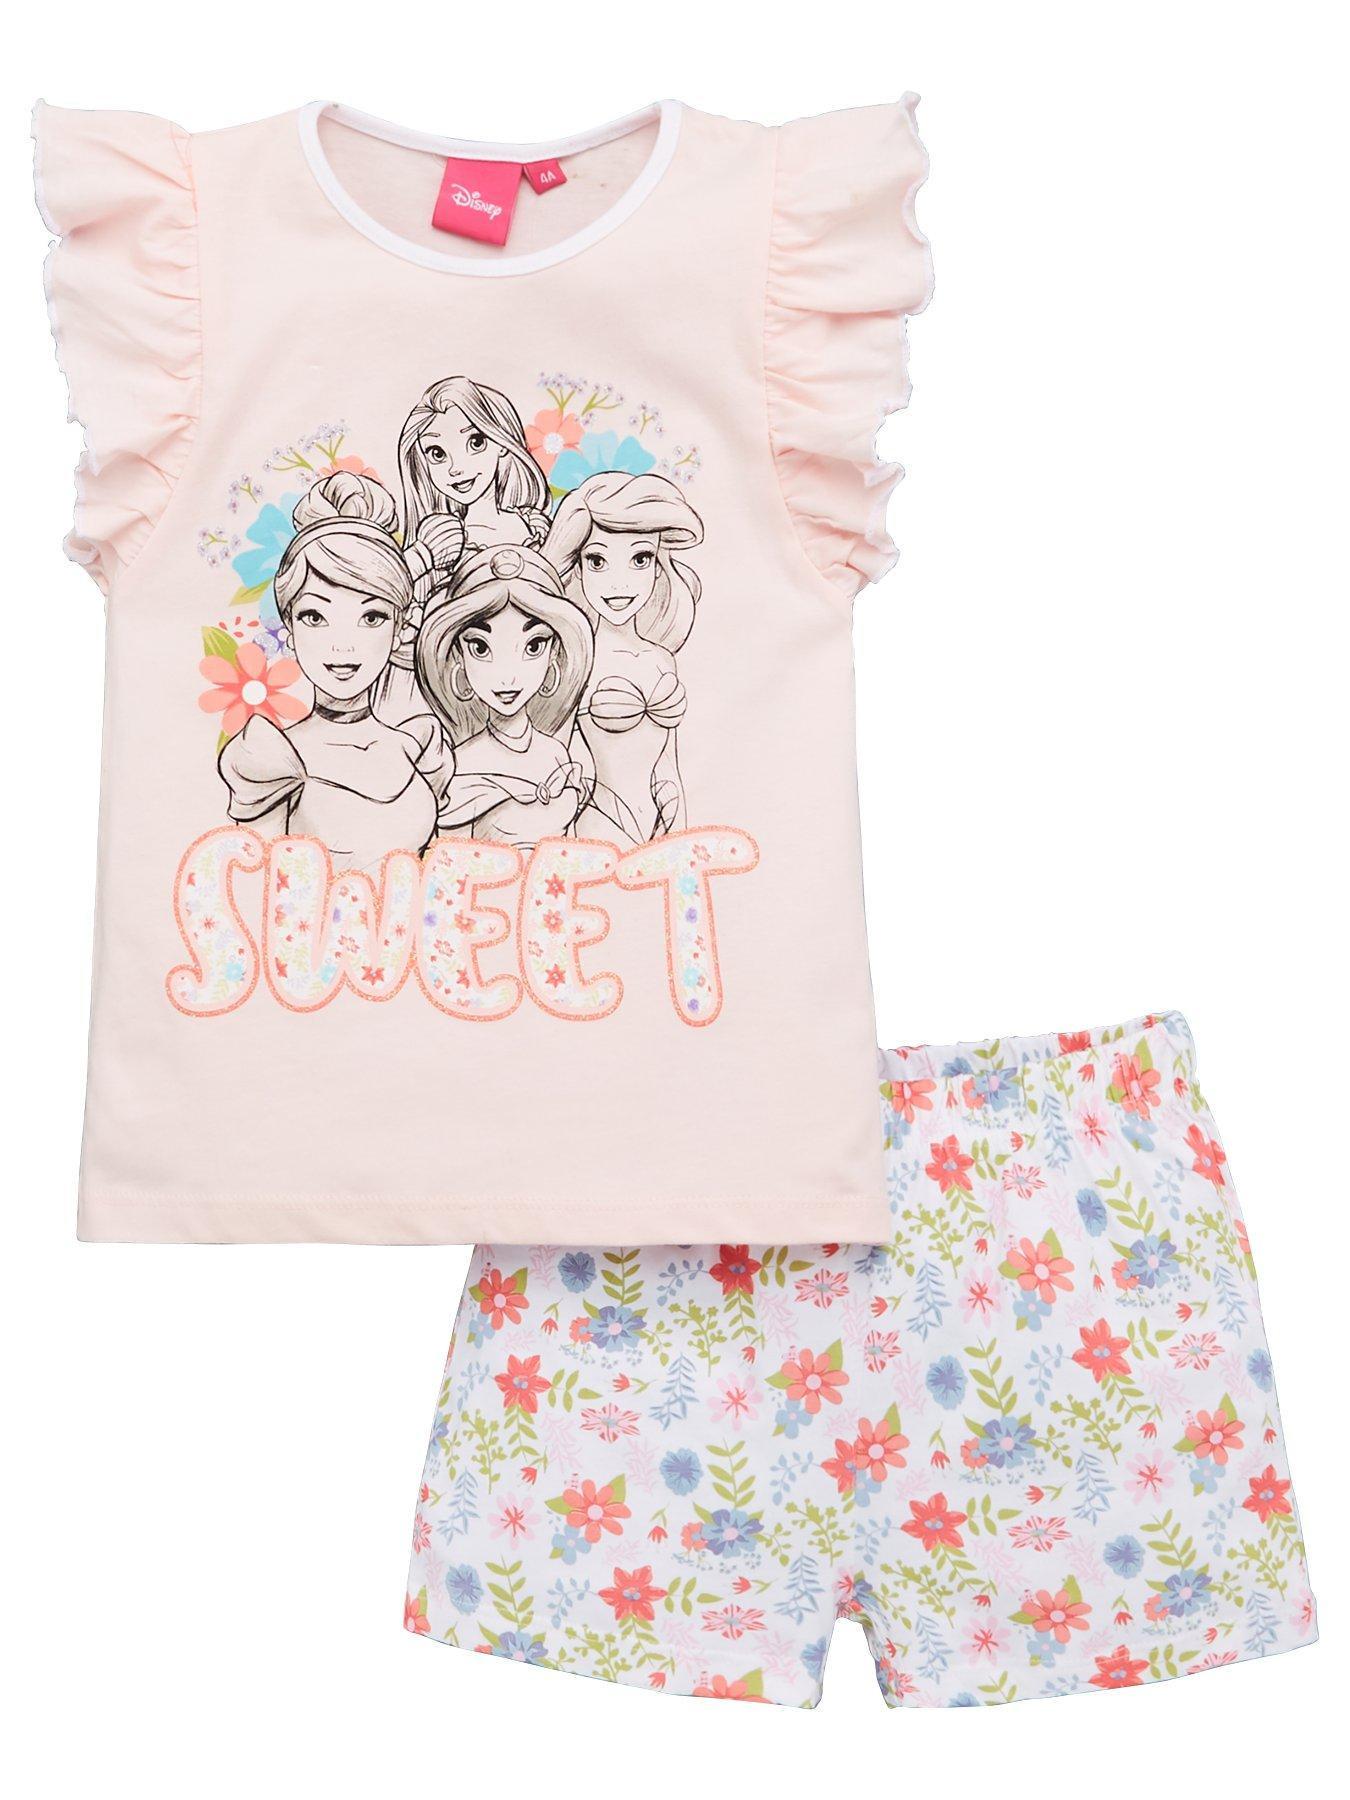 Girls Minnie Mouse Pyjamas Short Summer Pjs for Girls Ages 12 Months to 4 Years